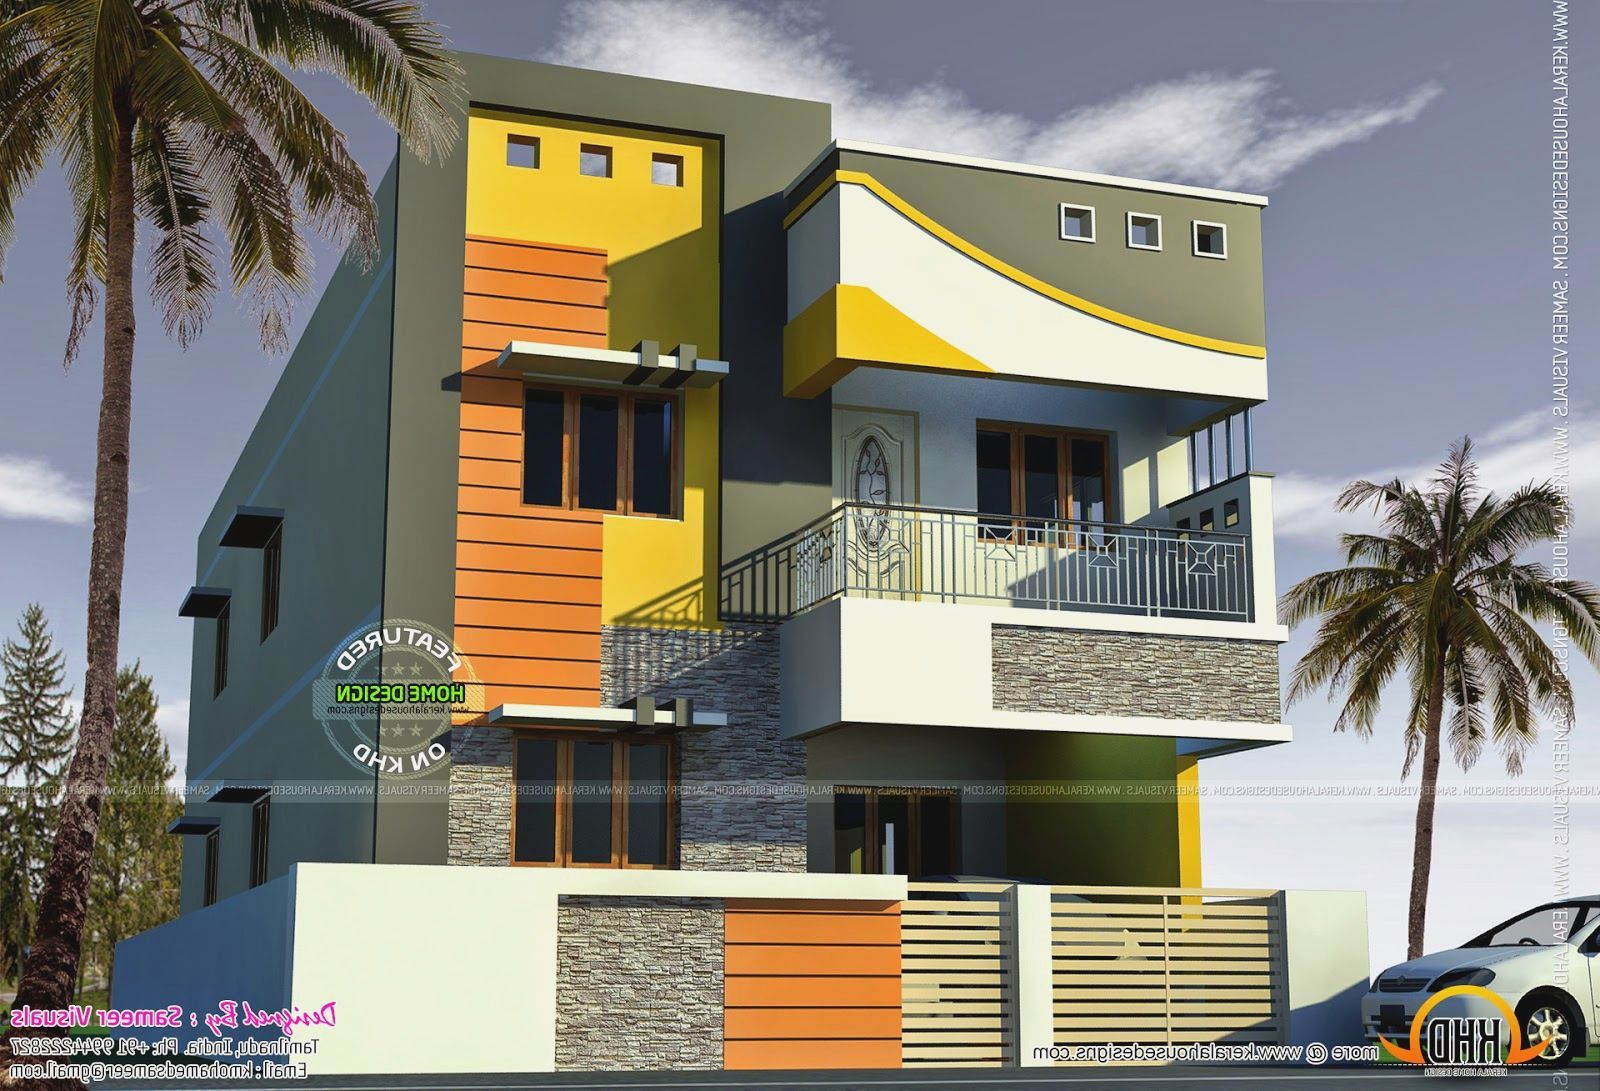 Tamilnadu house models more picture tamilnadu house models for House elevation models